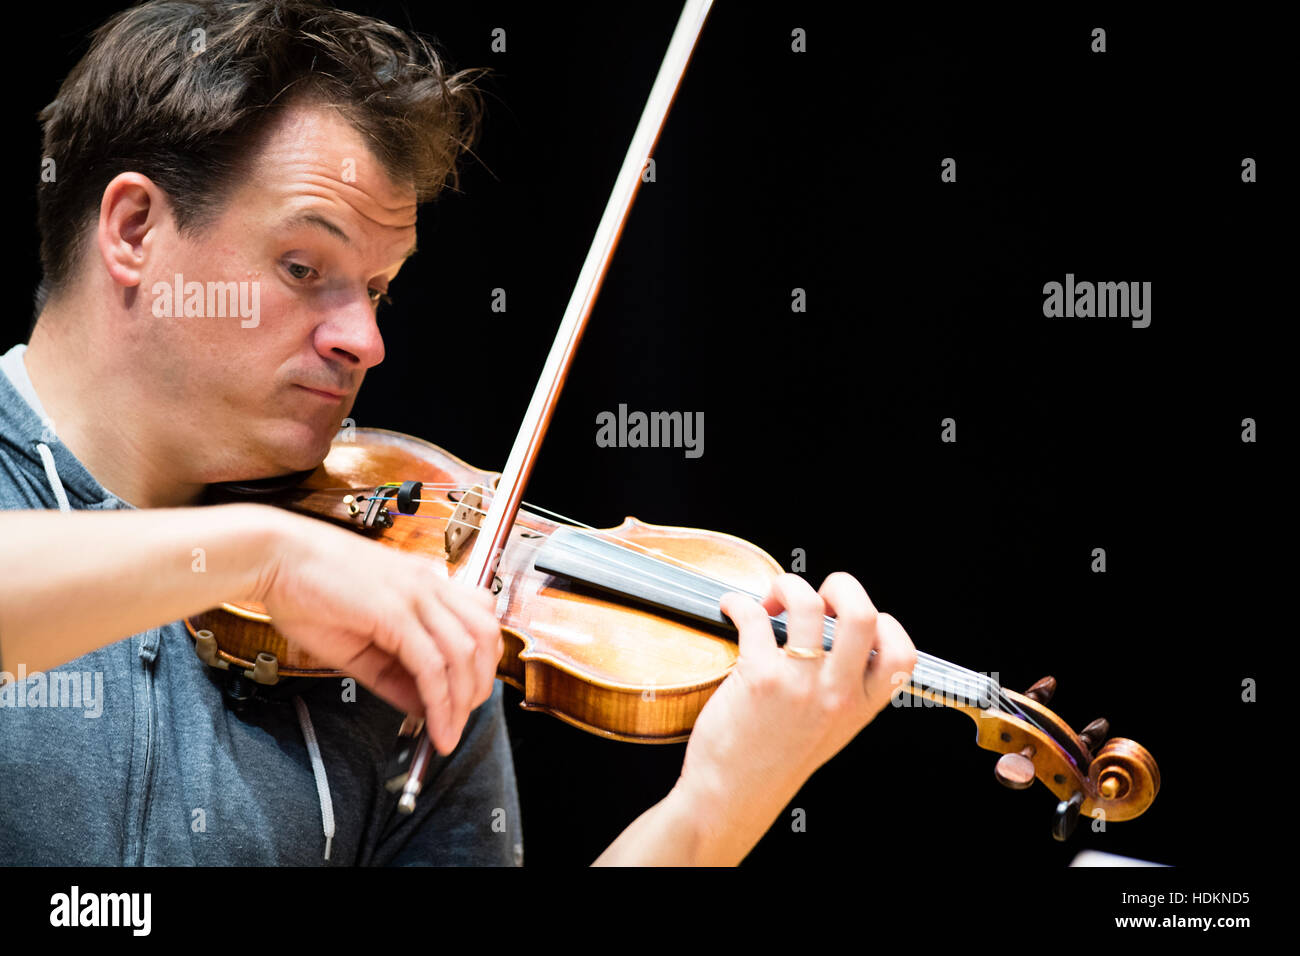 Magnus Johnston (violin) rehearsing for an evening concert at MusicFest Aberystwyth , Wales UKL - July 2016 - Stock Image